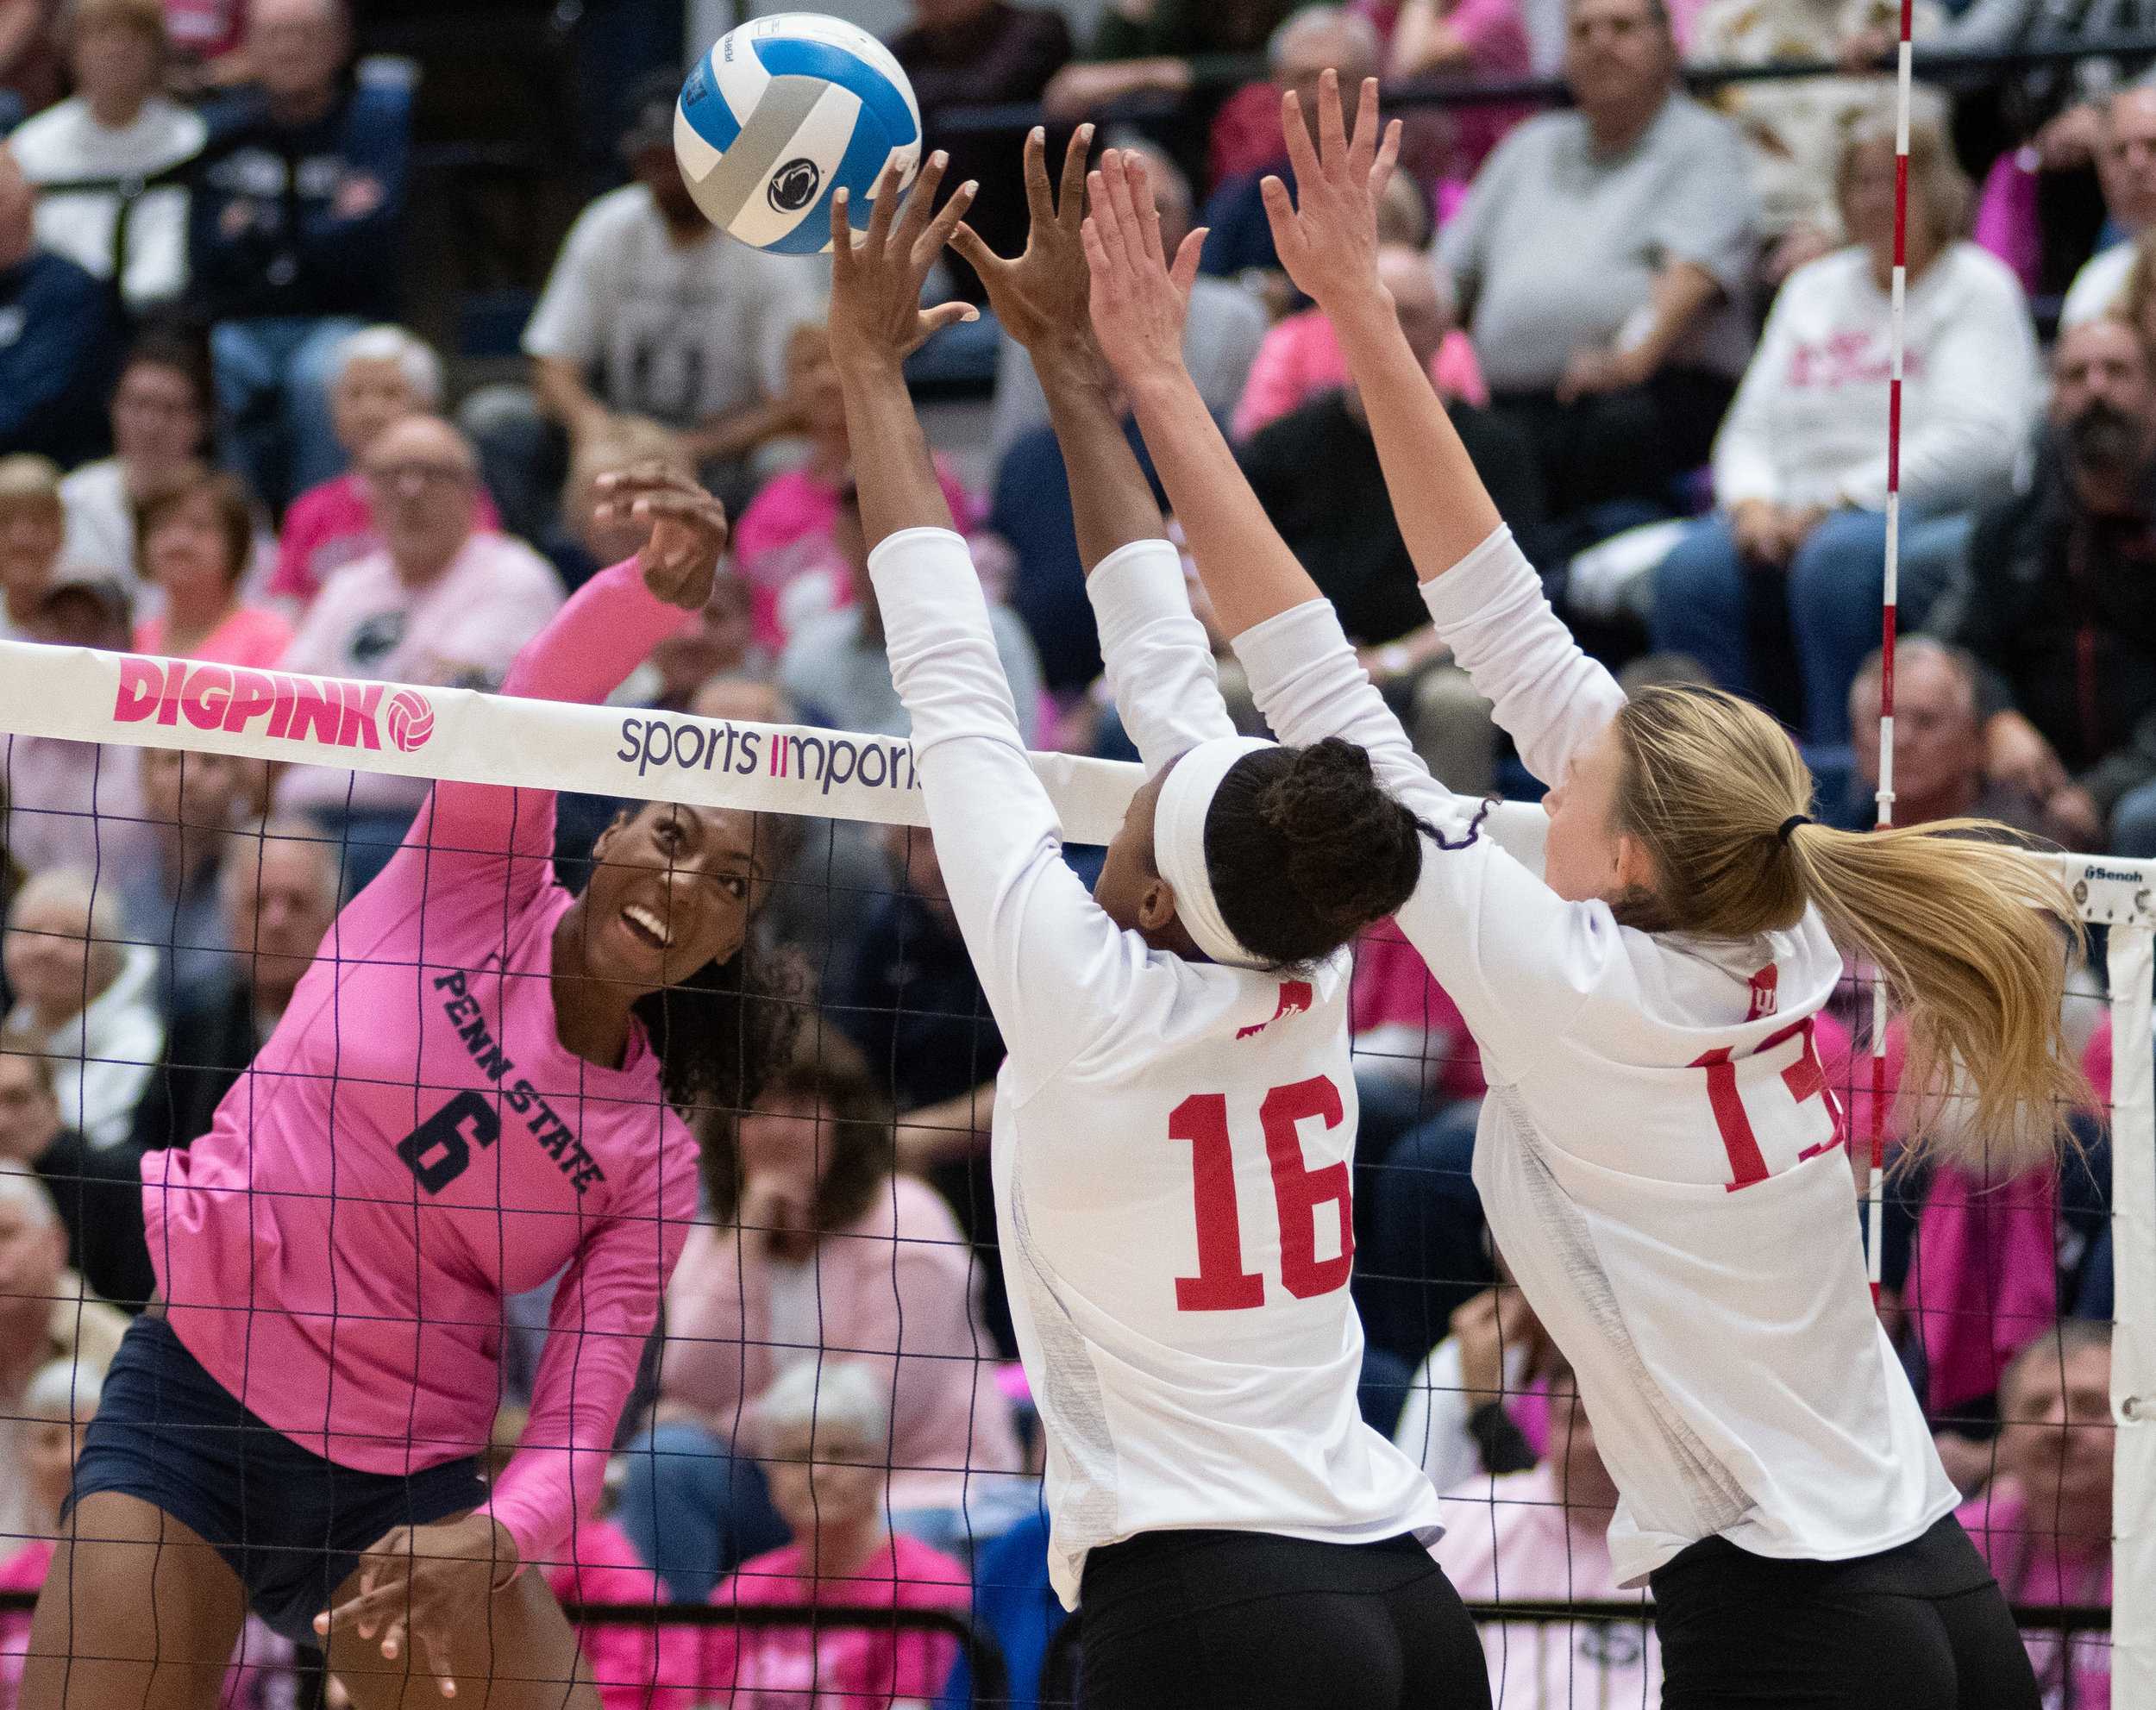 Outside hitter Nia Reed (6) spikes the ball during the game against Indiana at Rec Hall on Friday, Oct. 26, 2018. The Nittany Lions defeat Indiana in 3 sets. | Photo by: Noah Riffe